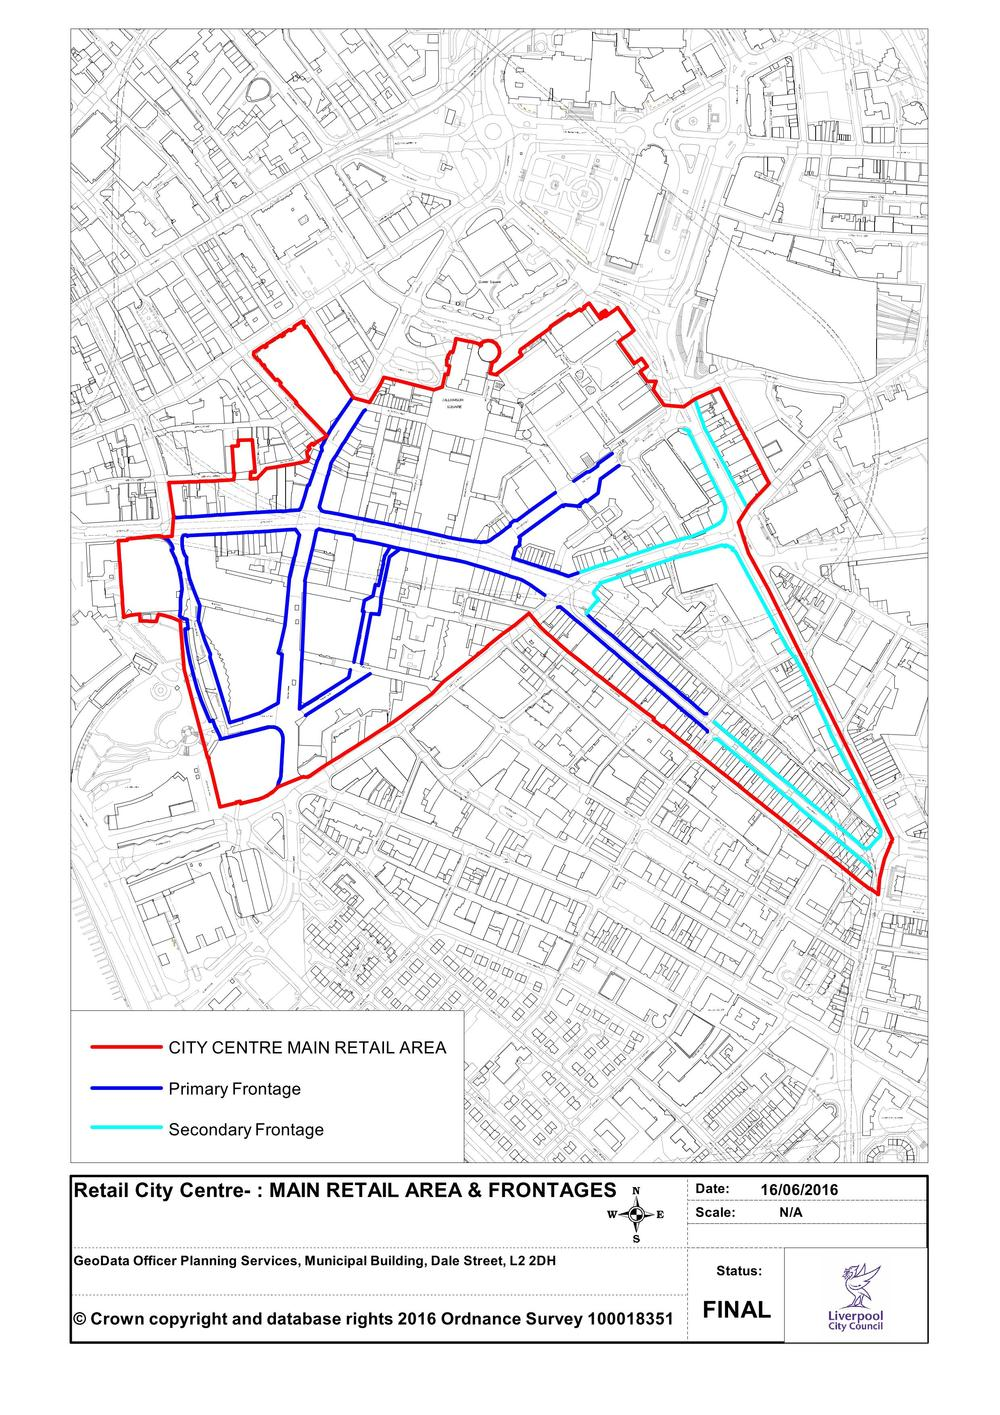 Liverpool City Council Draft Liverpool Local Plan 6 Liverpool